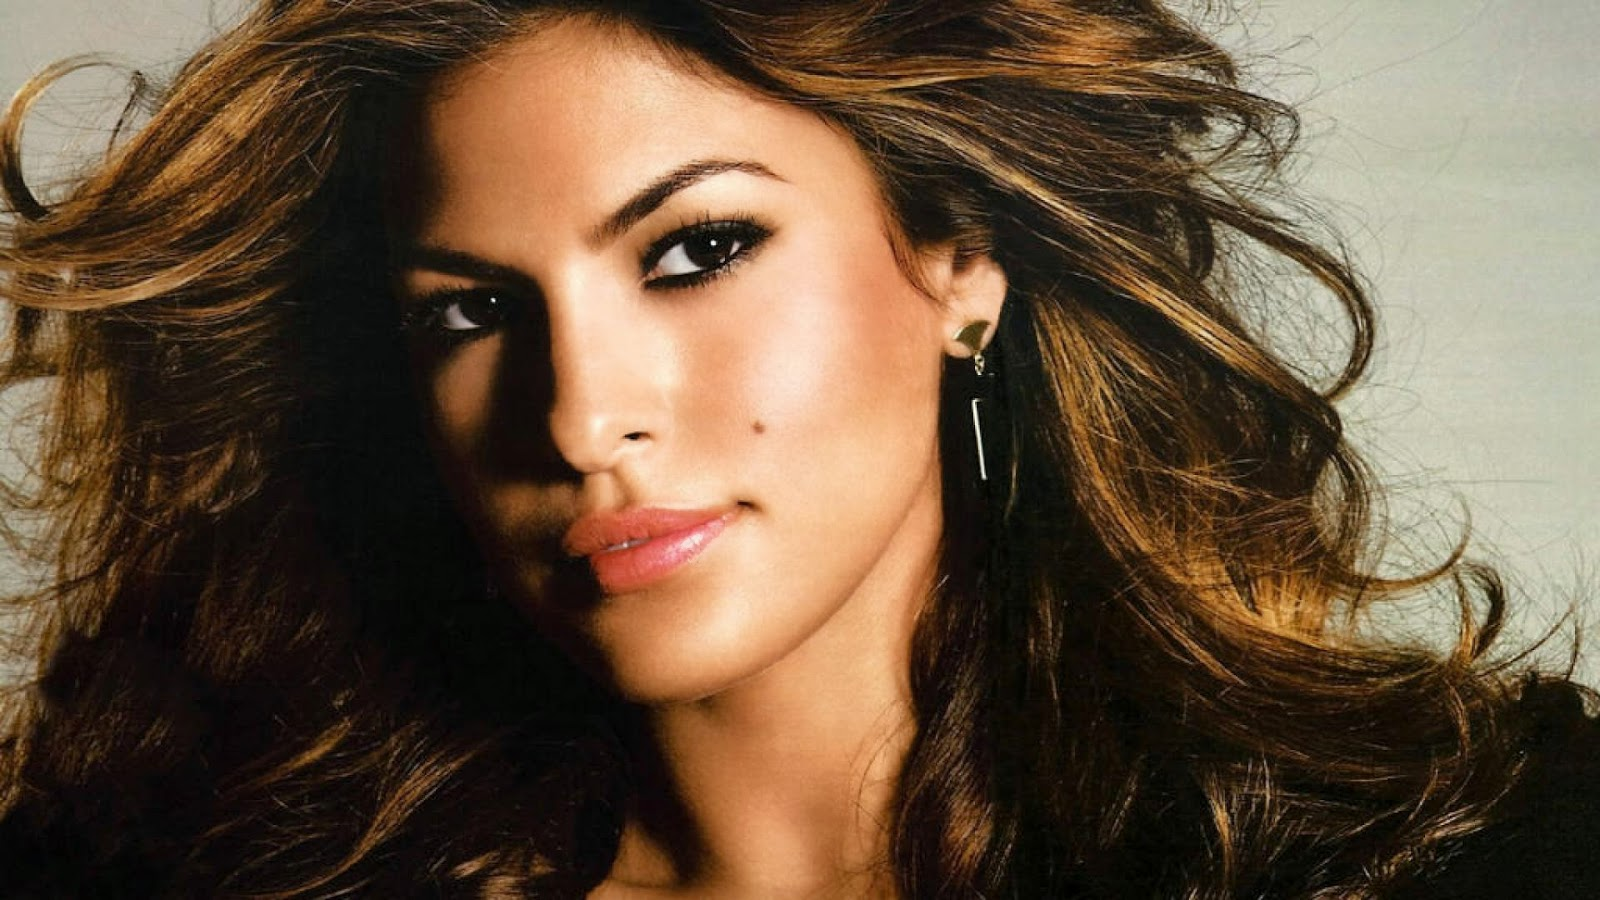 Eva mendes amazing photo of hair style